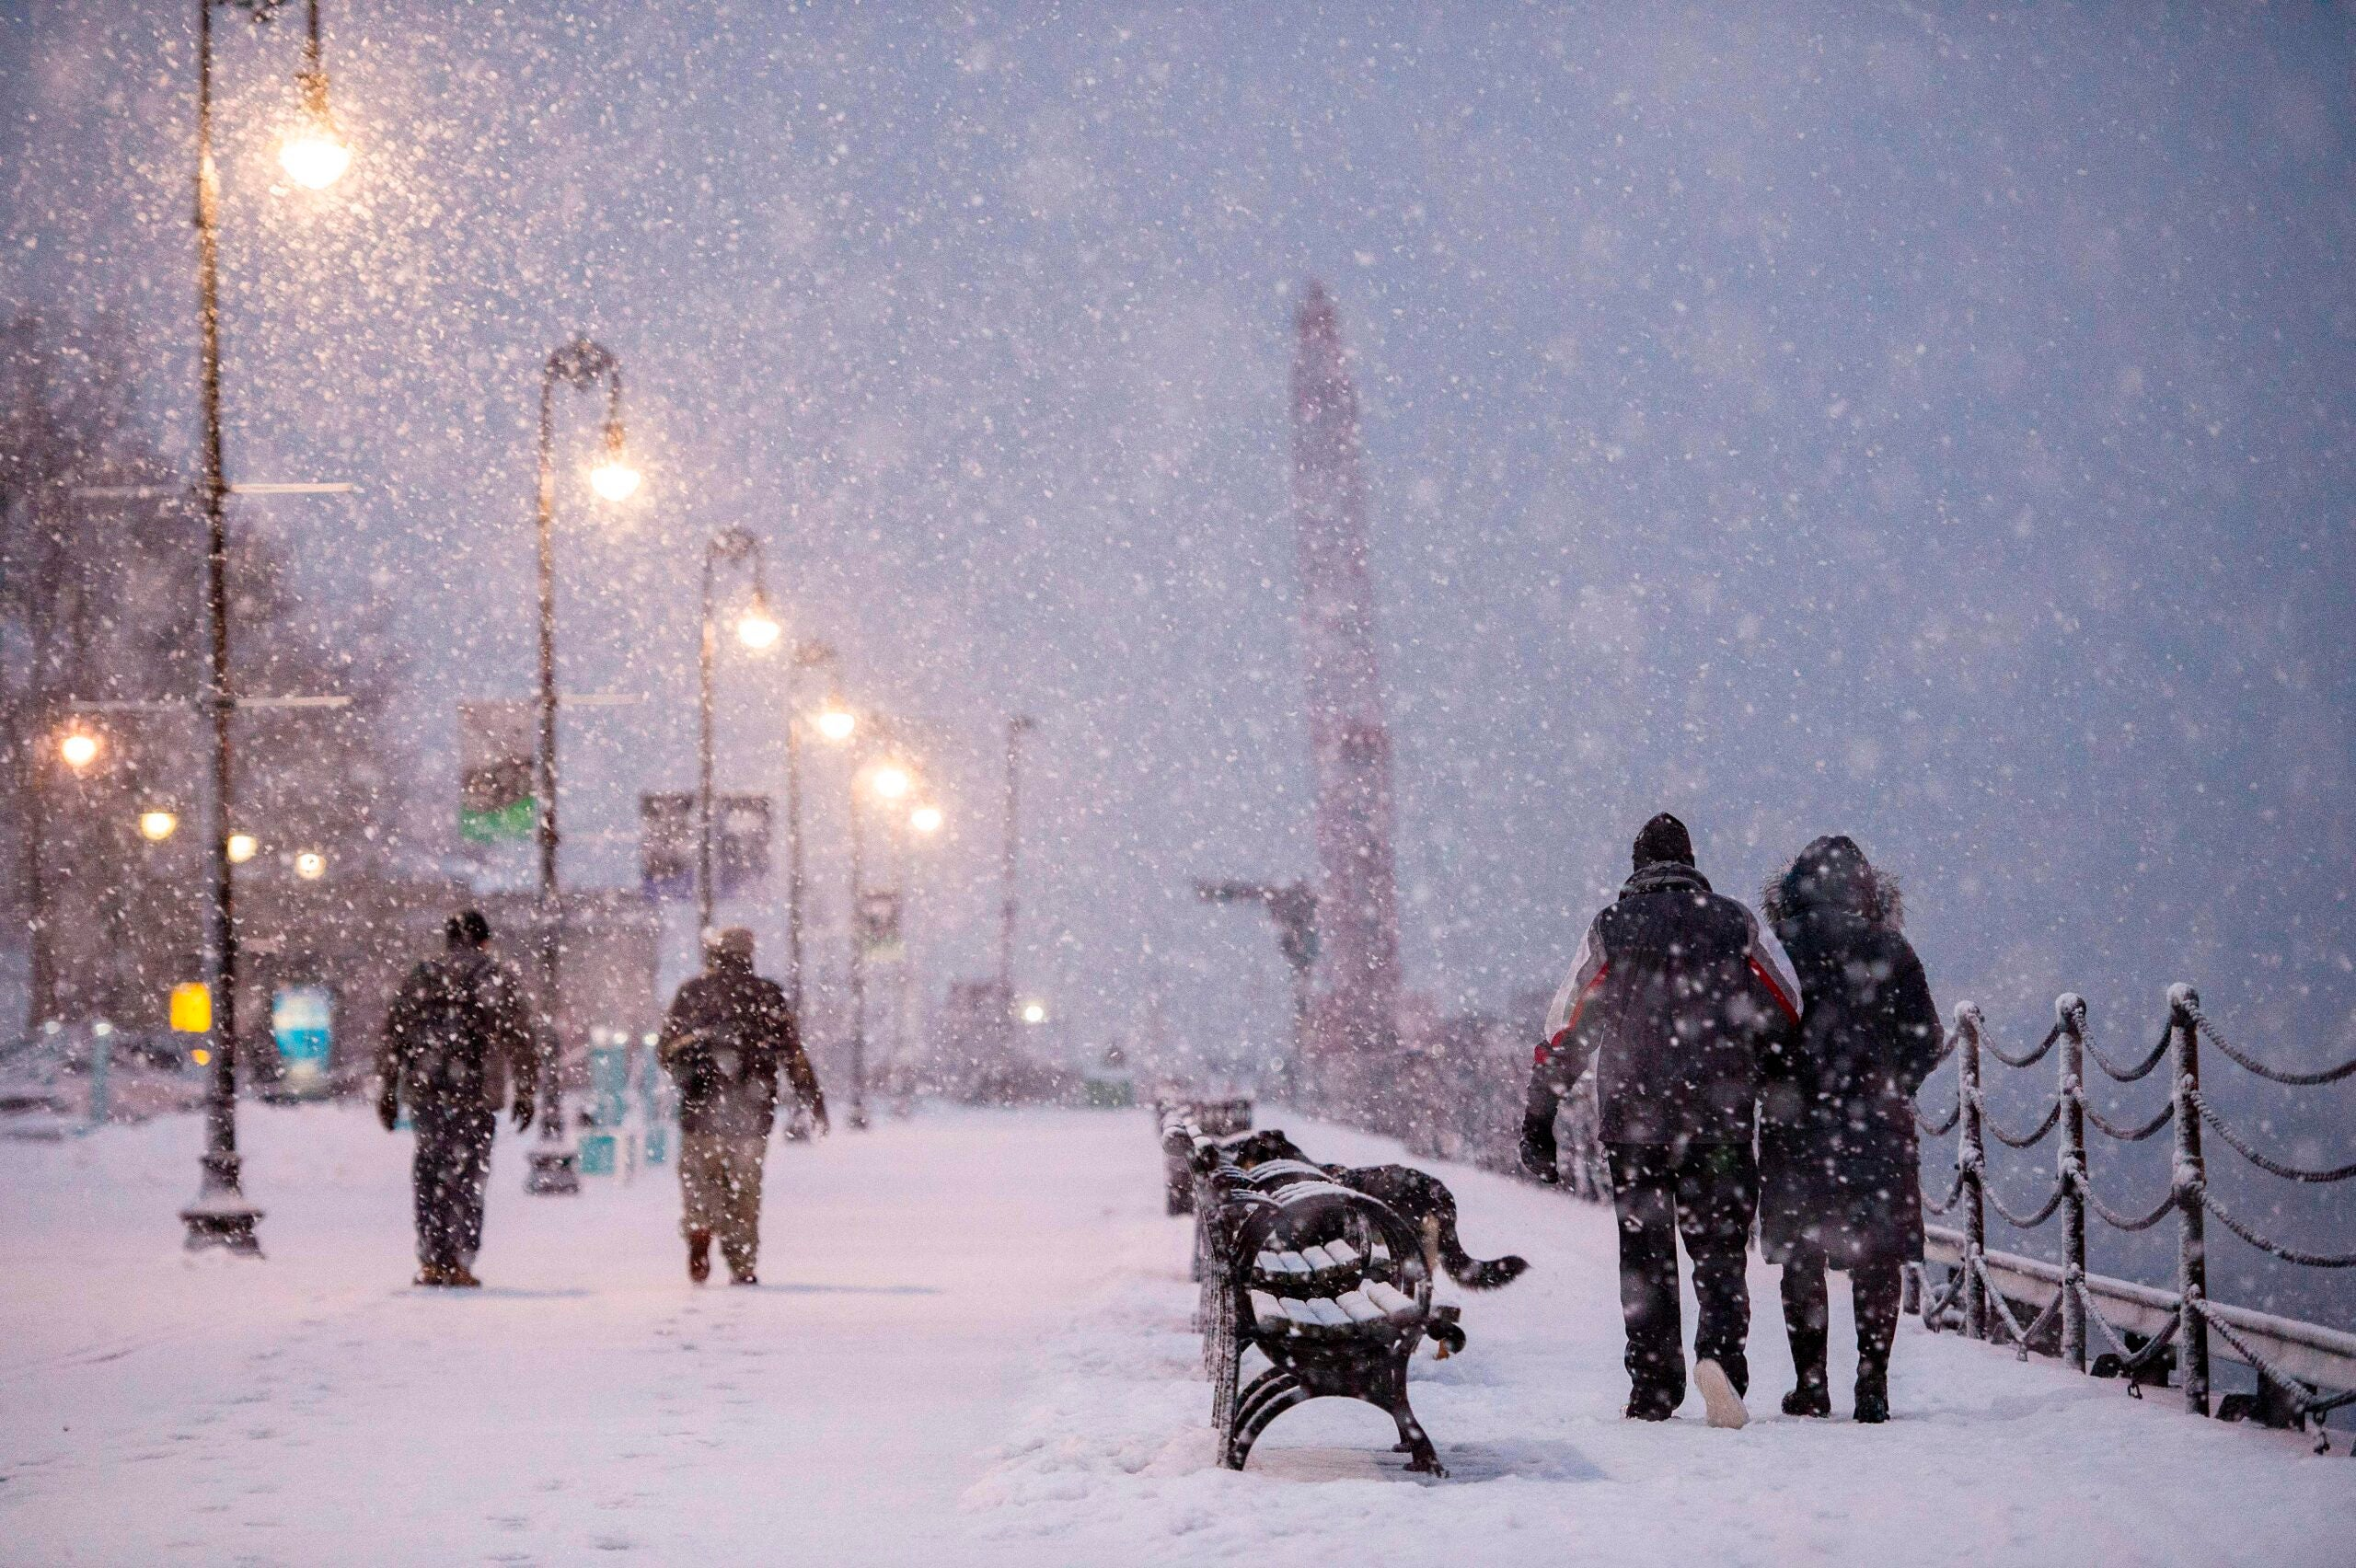 People walk through heavy snow fall in the Navy Yard during a winter storm.